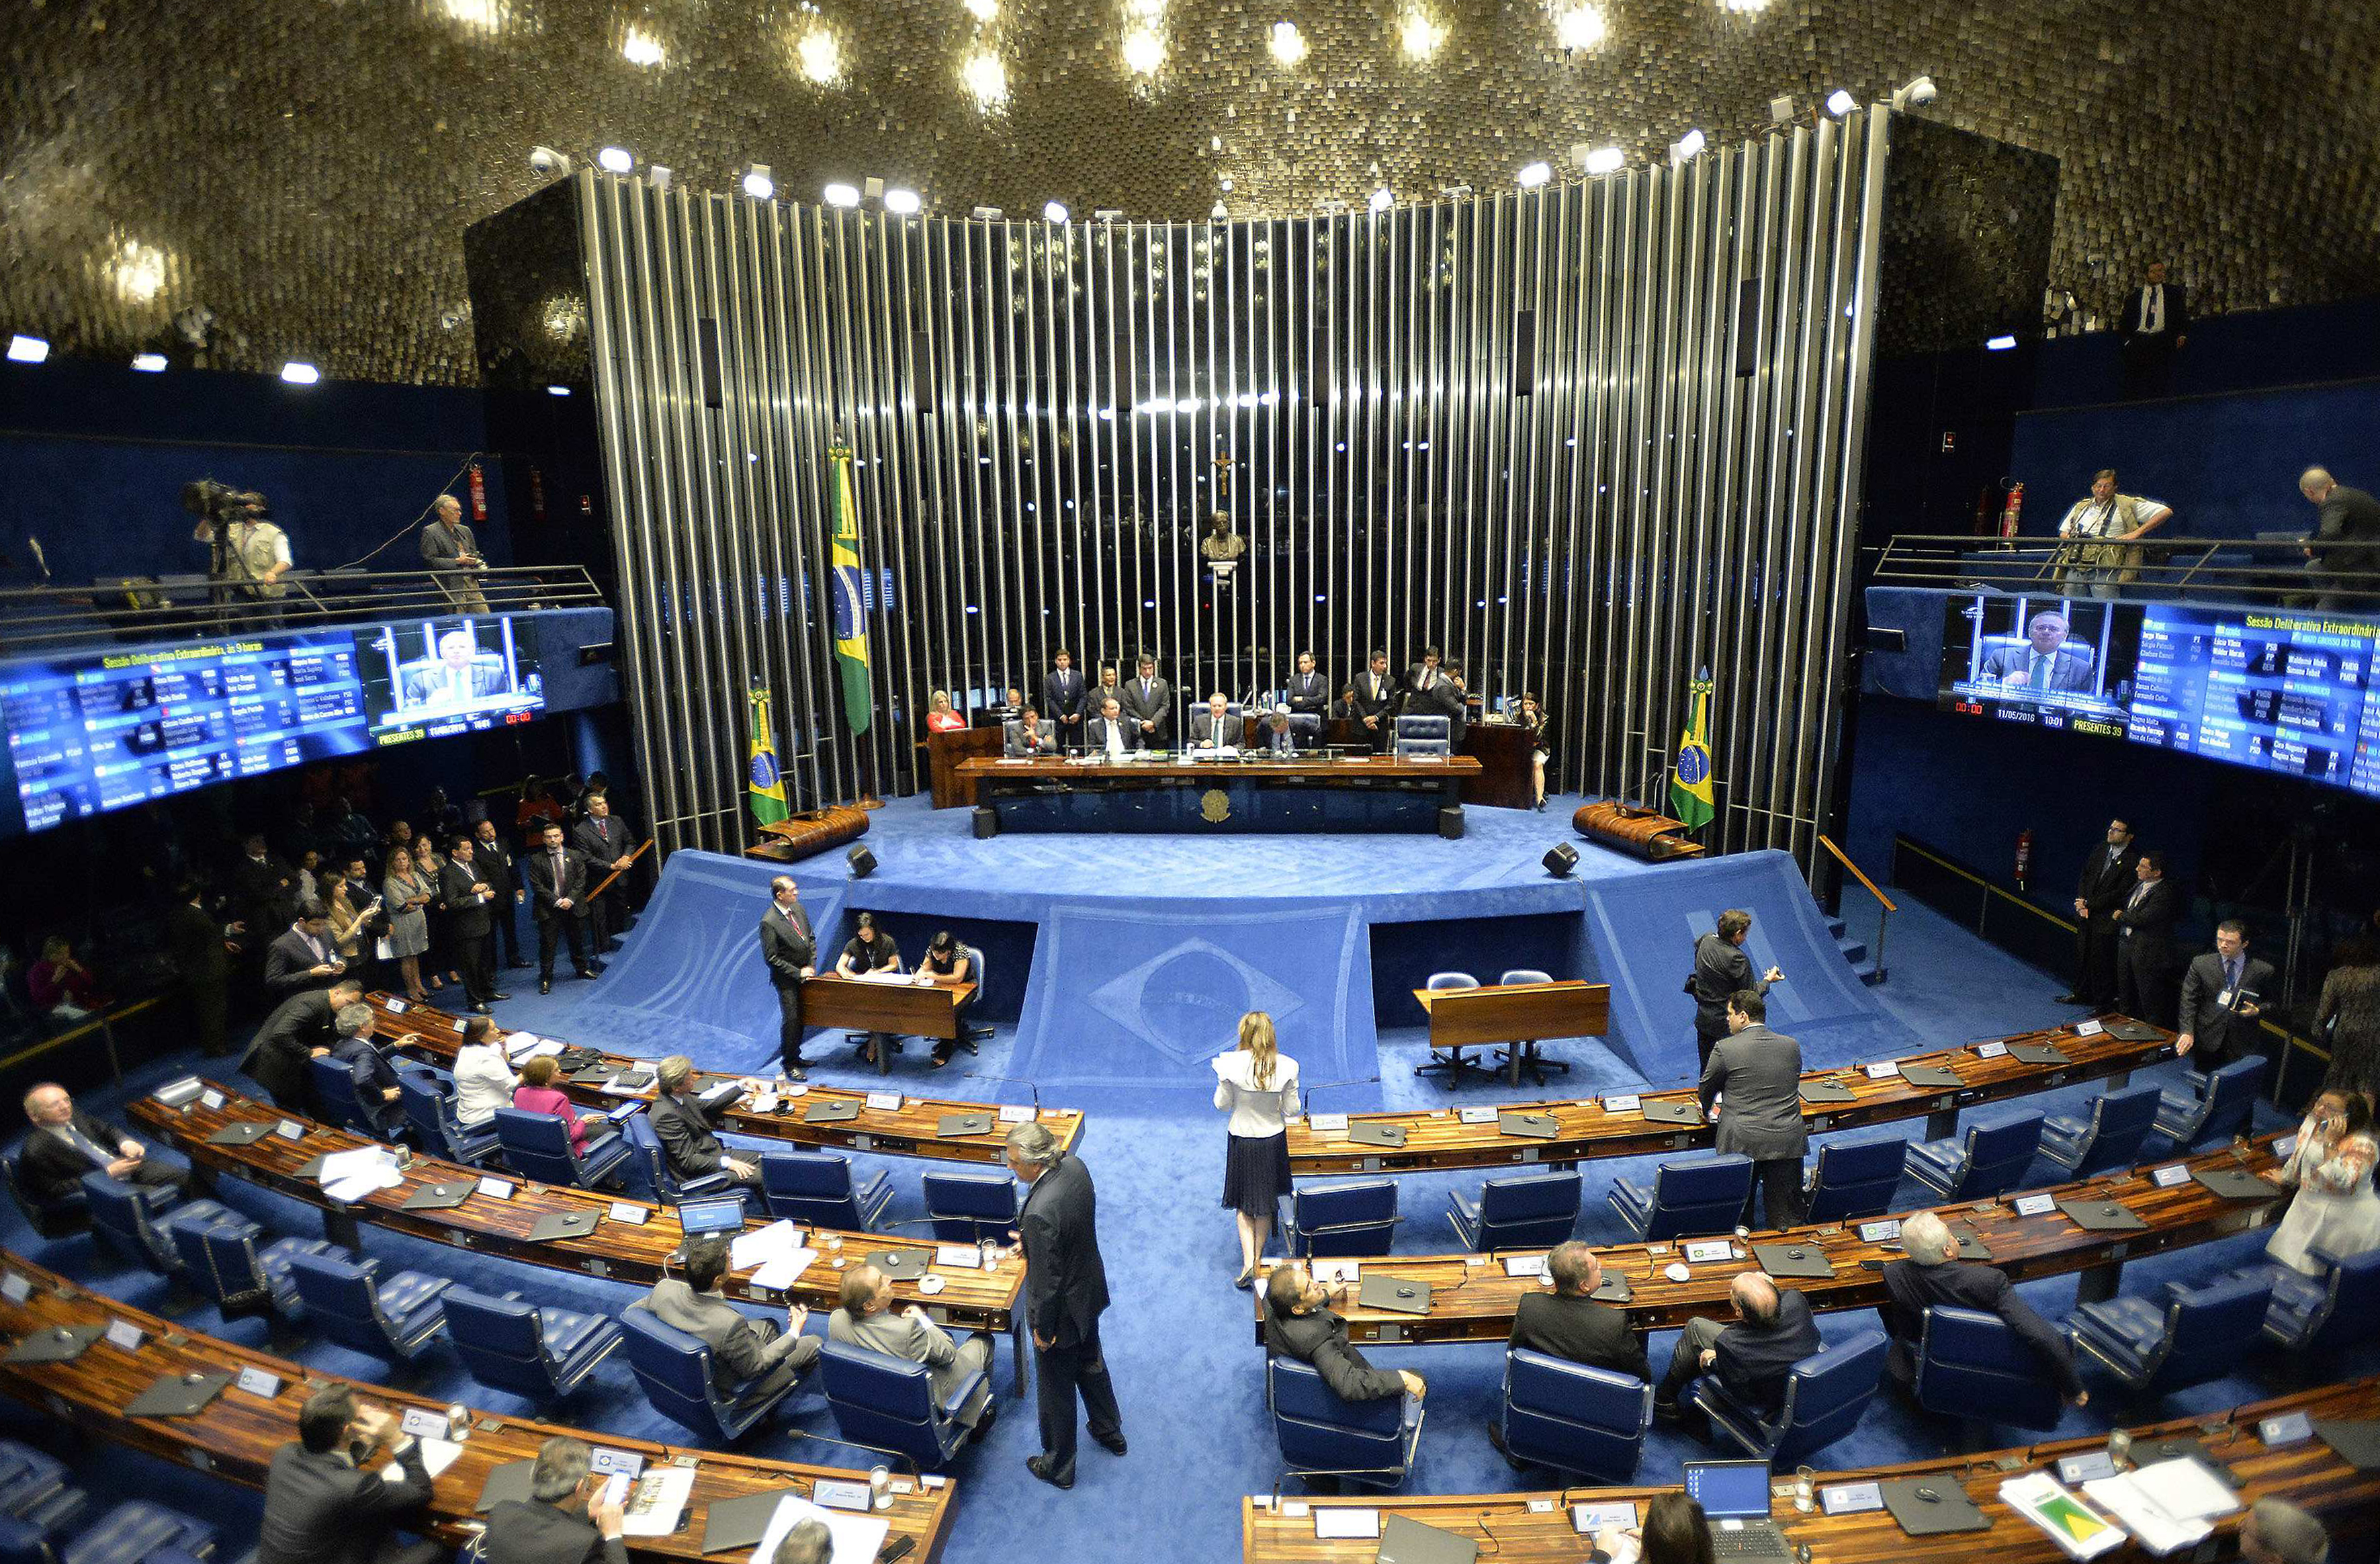 A general view of the Brazilian Senate as it begins a session that will decide whether Brazilian President Dilma Rousseff will be subject to impeachment that could end her mandate, in Brasilia, Brazil, 11 May 2016.